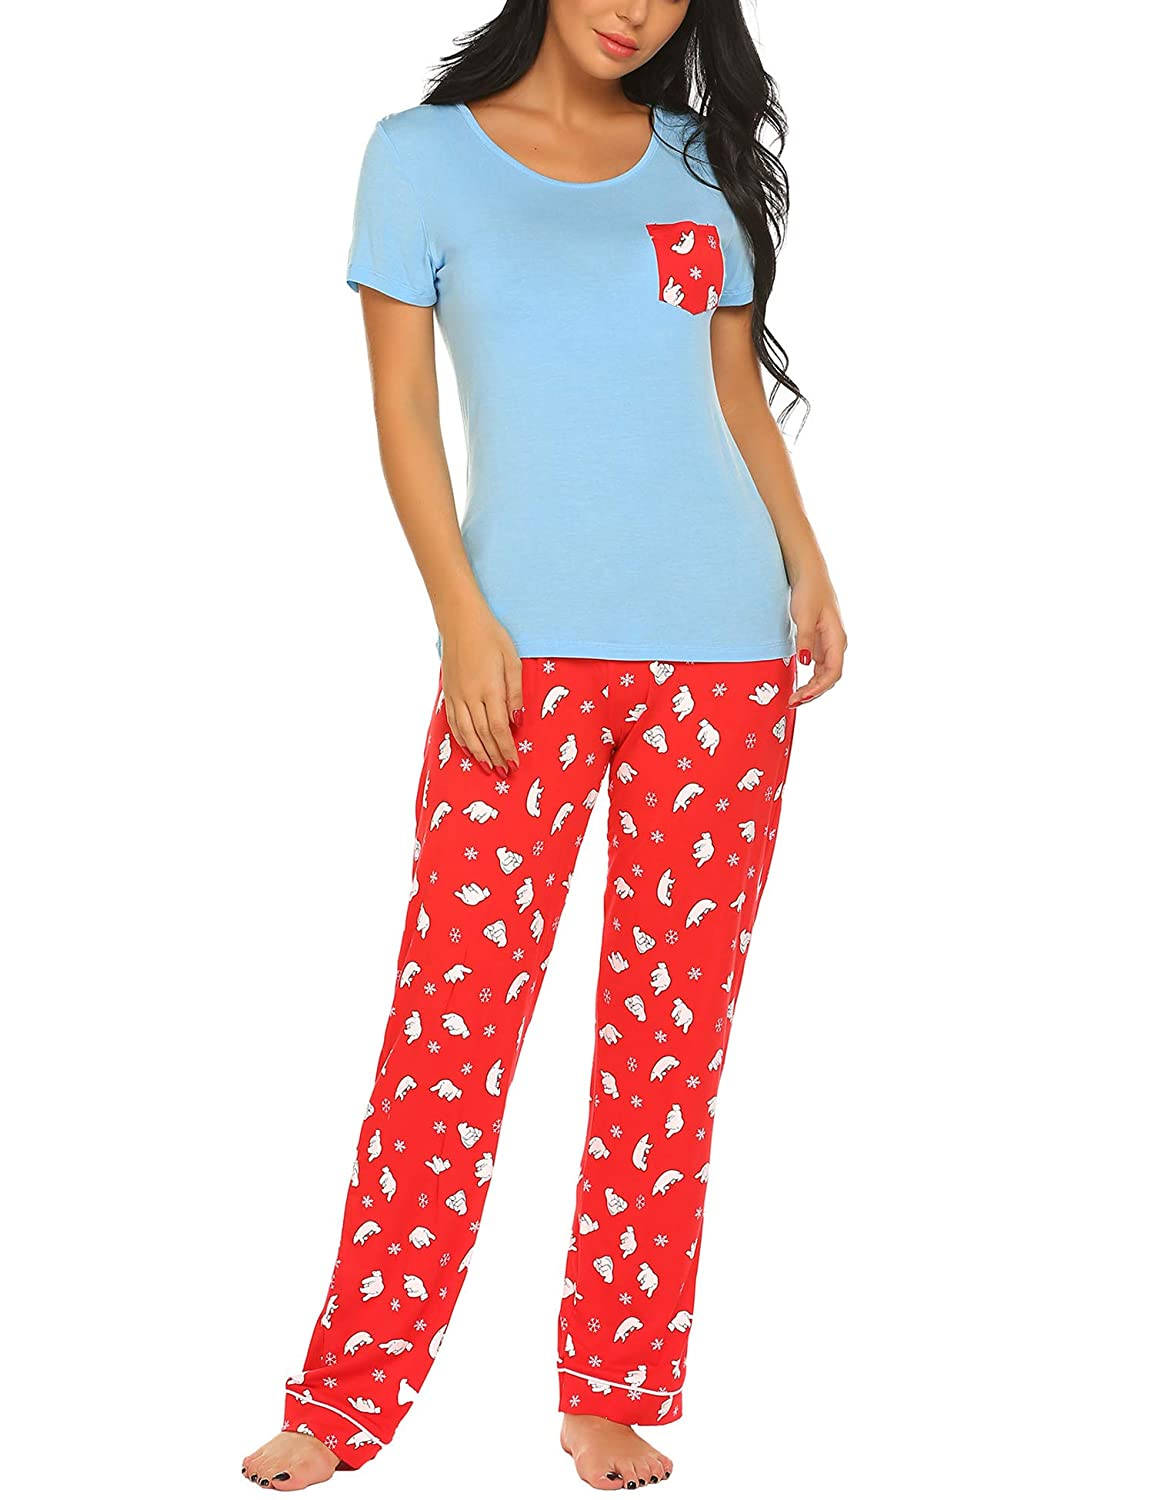 Ekouaer Women s Pjs Print Animal Pajama Set Dog Elegant Pants ... f7c363d13eb1